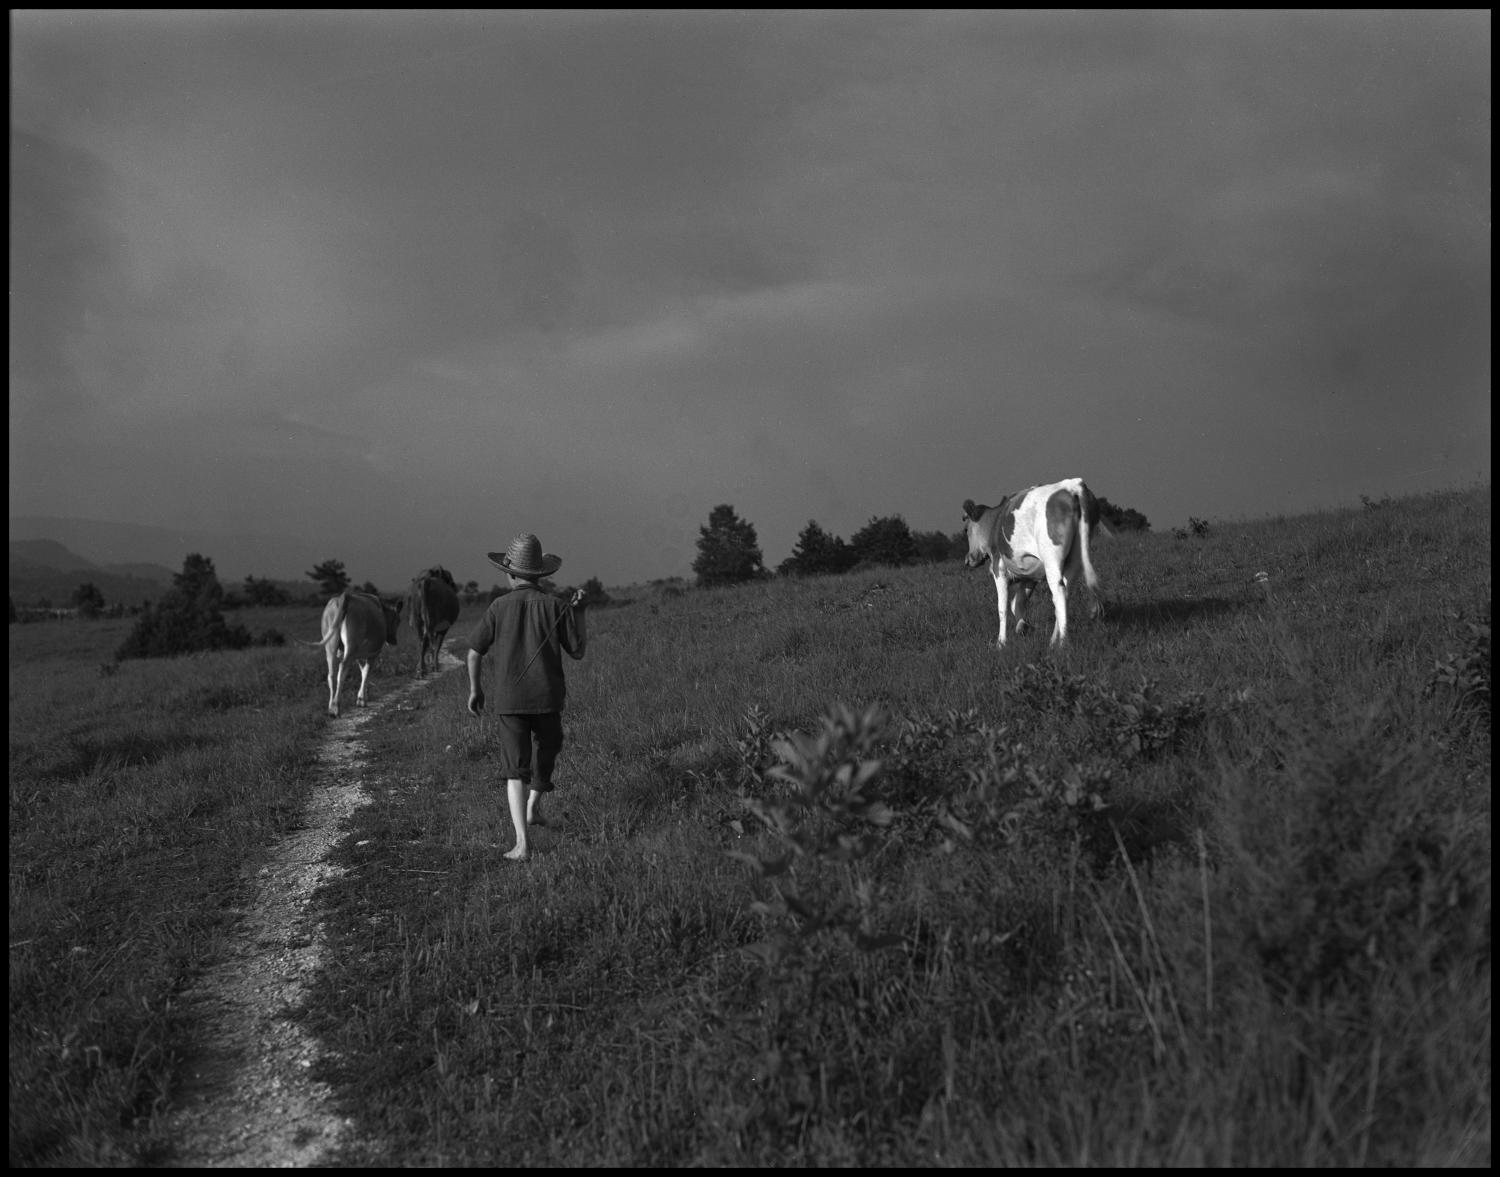 [Country Boy walking the Cows Home], Photograph of young Joe Day walking the cows home down a path in Cumberland Gap, Tennessee.,